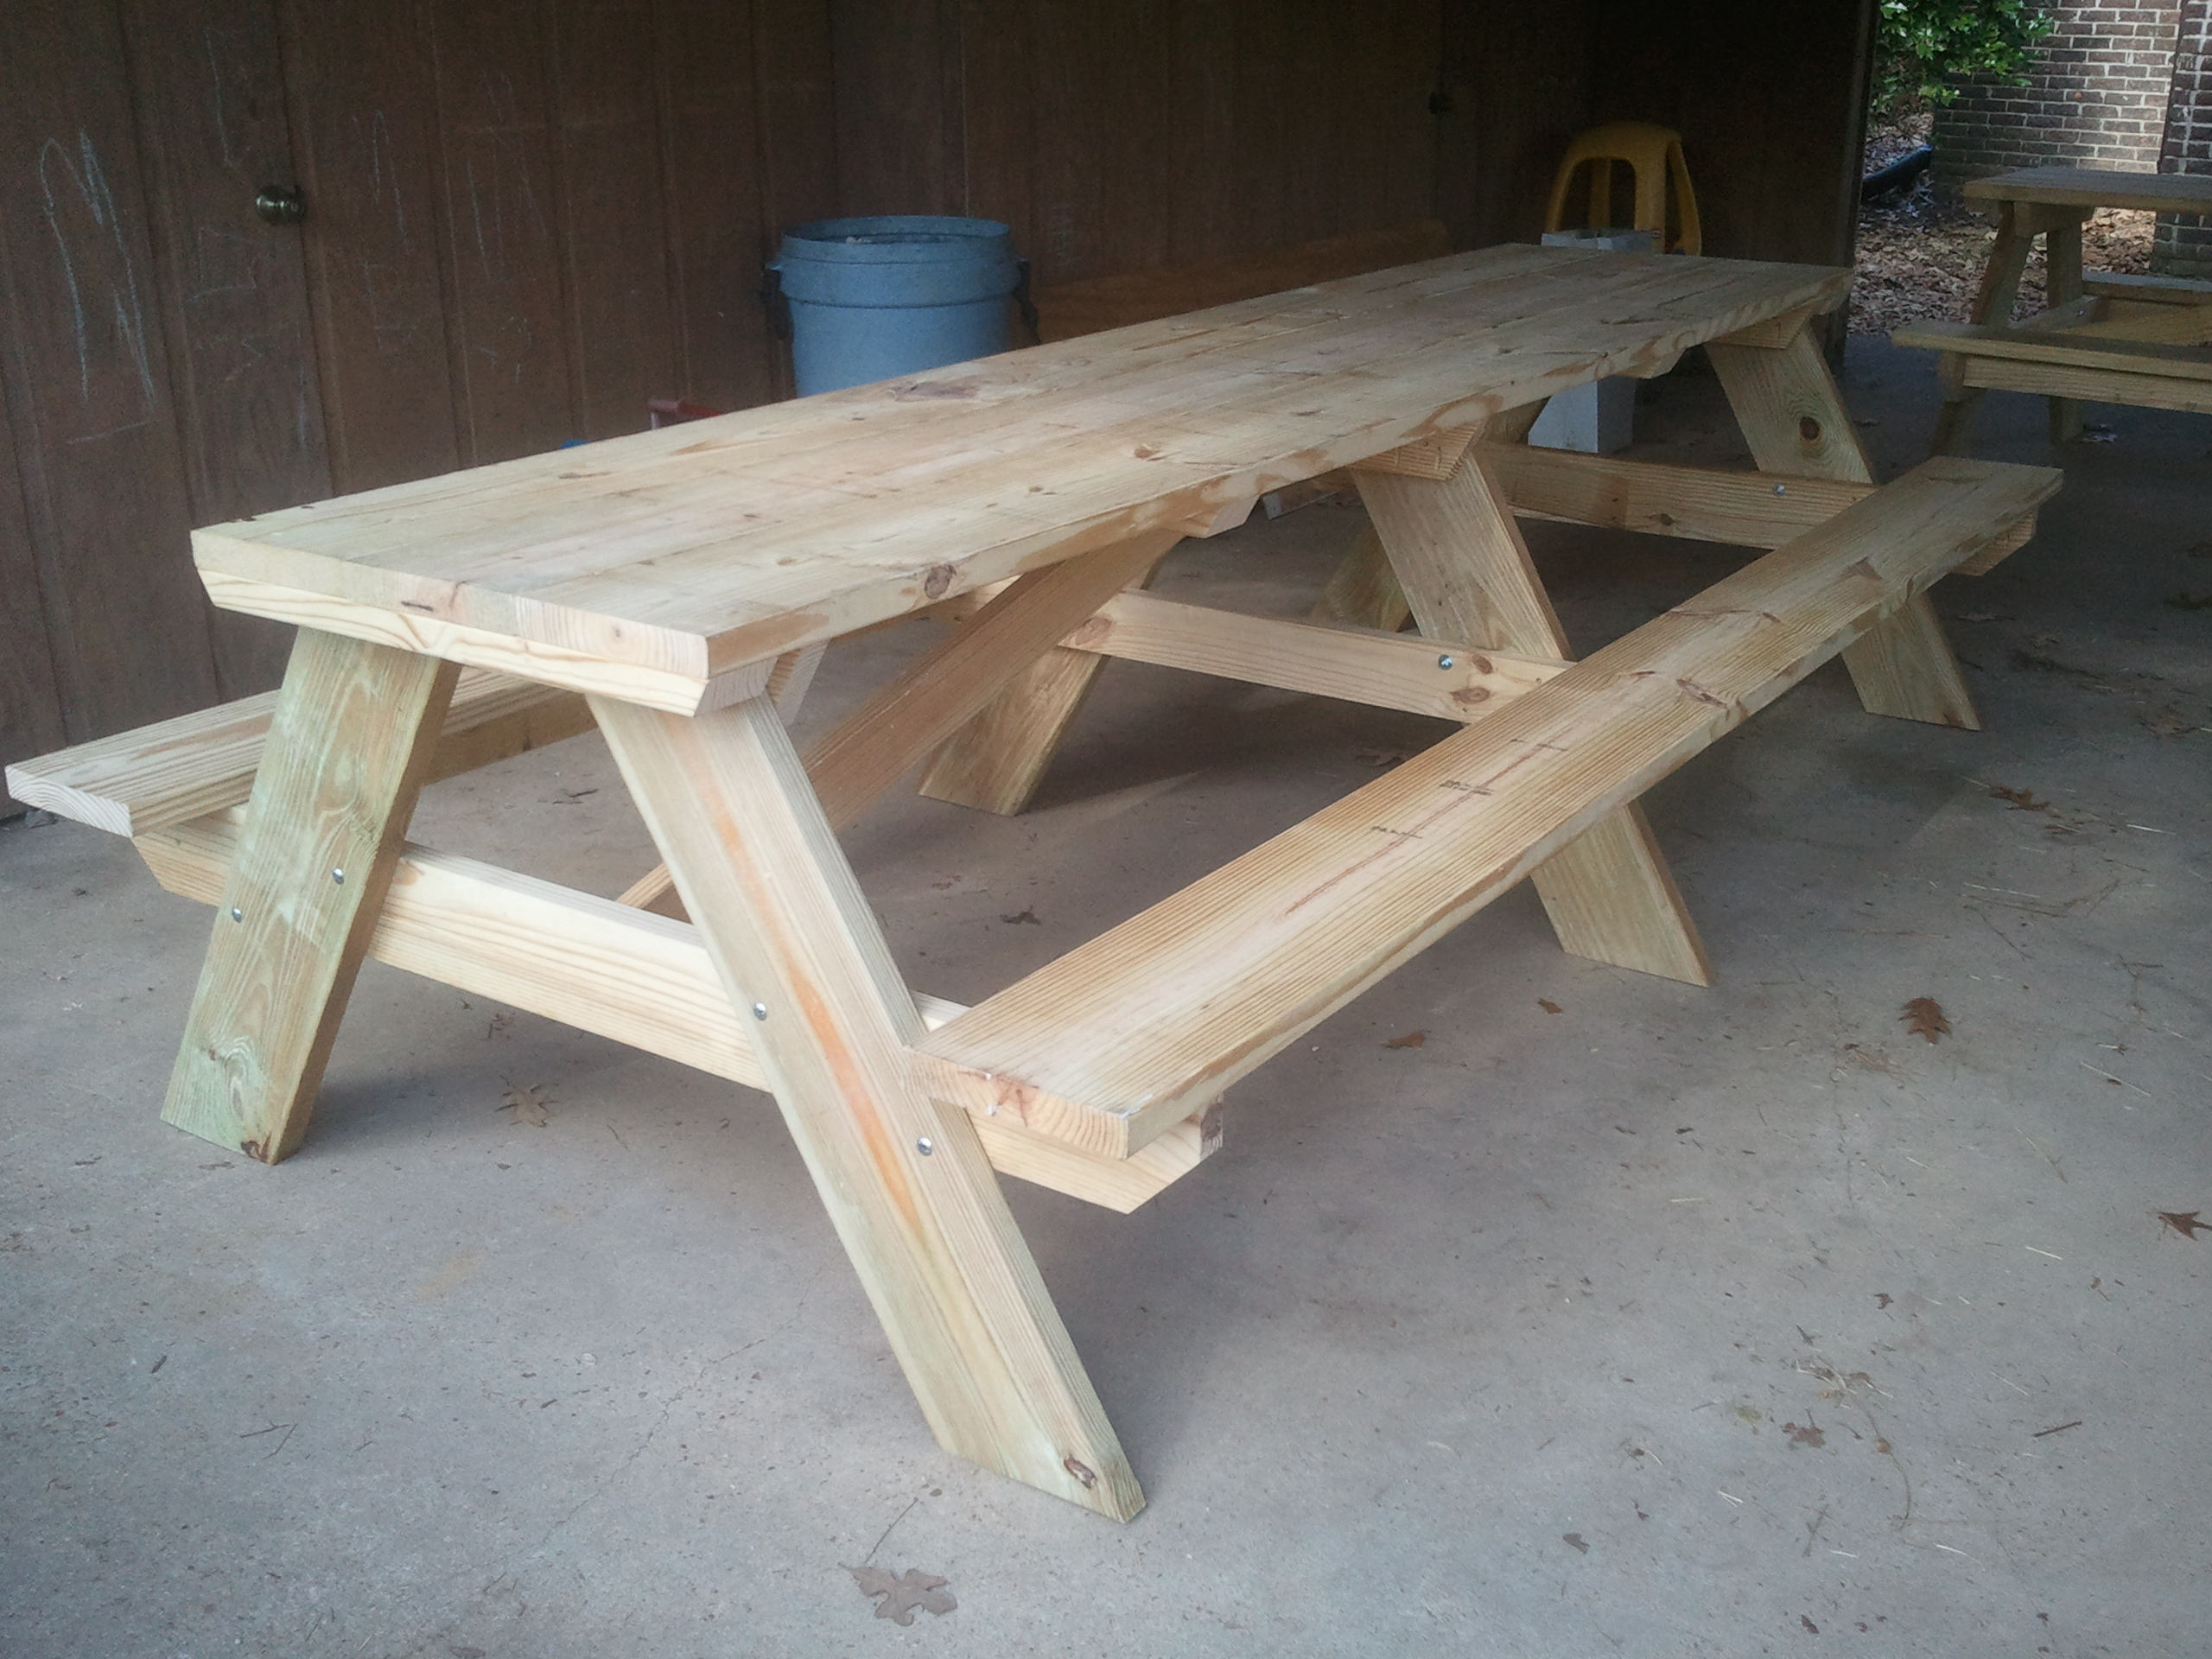 picnic table plans free download – furnitureplans